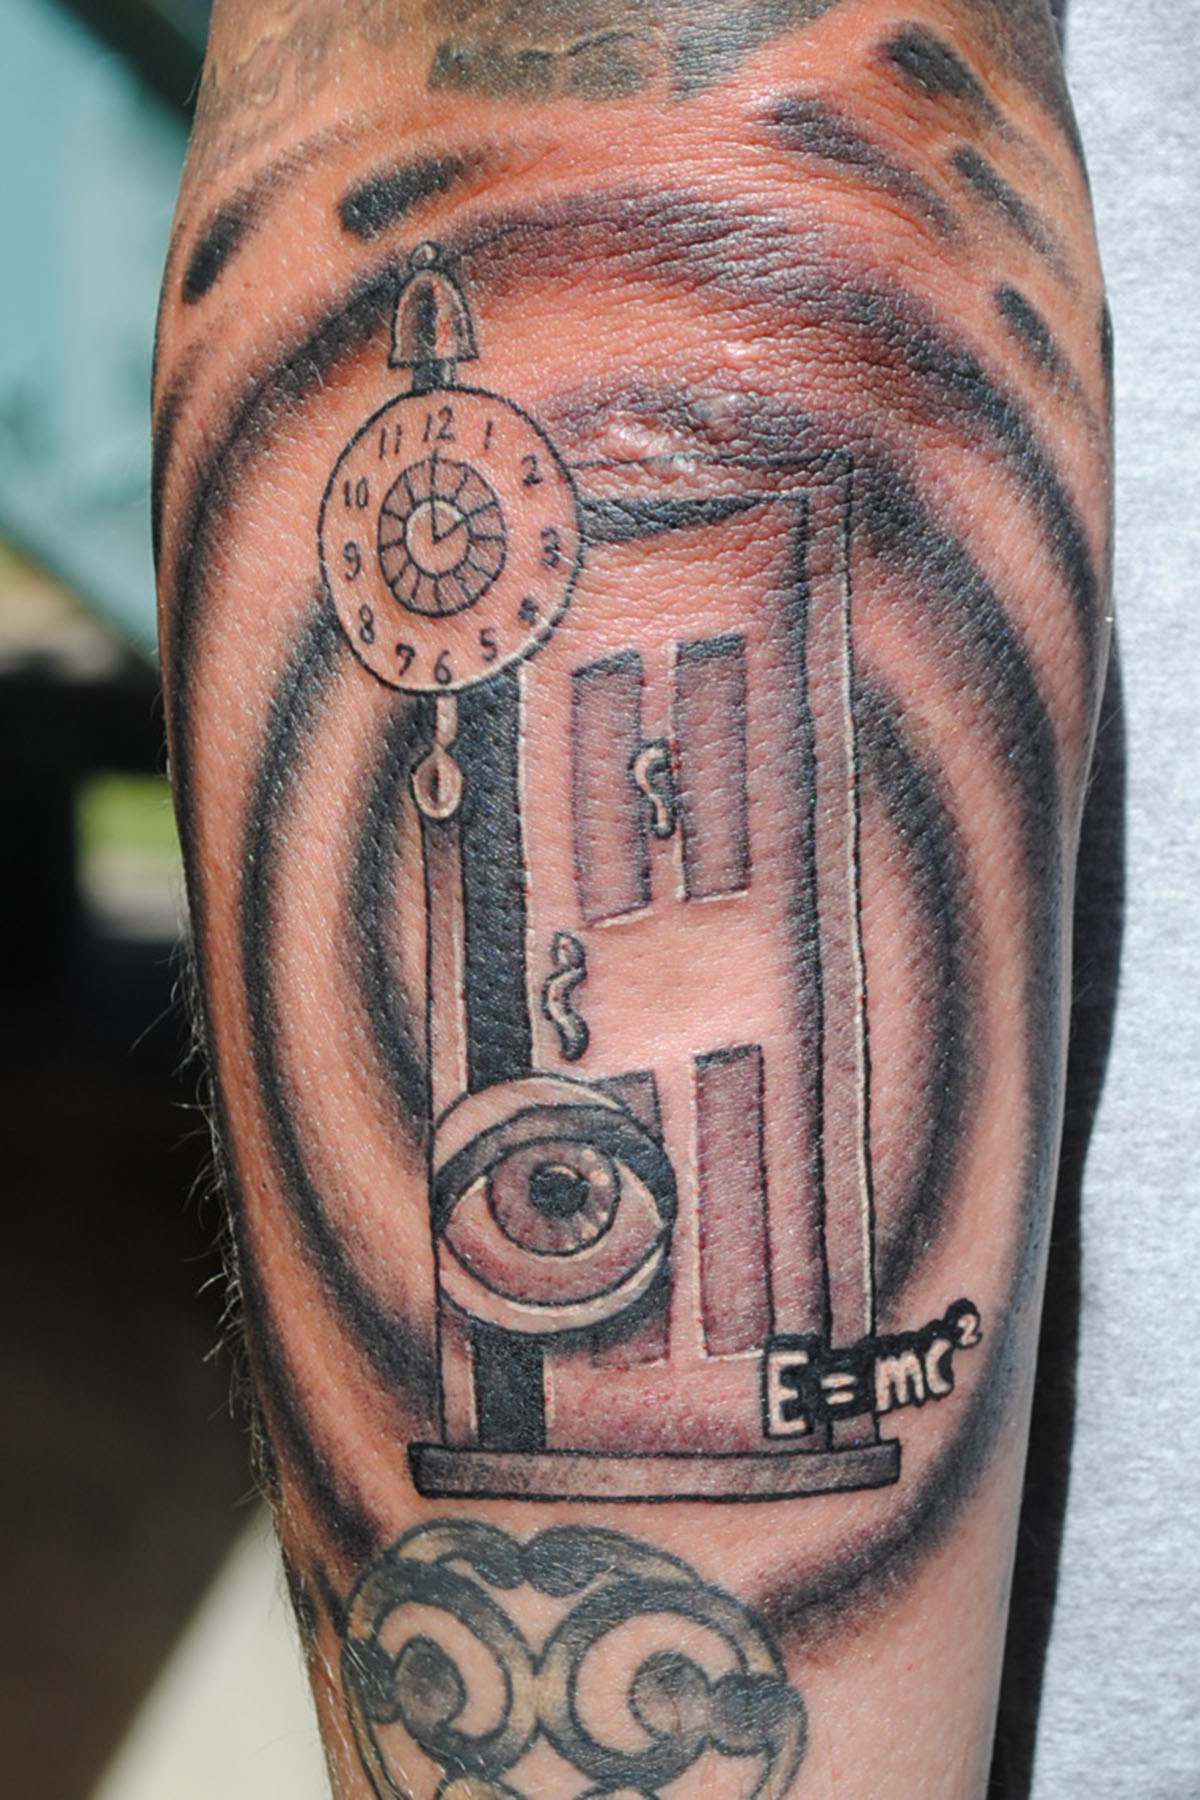 Twilight Zone Tattoo